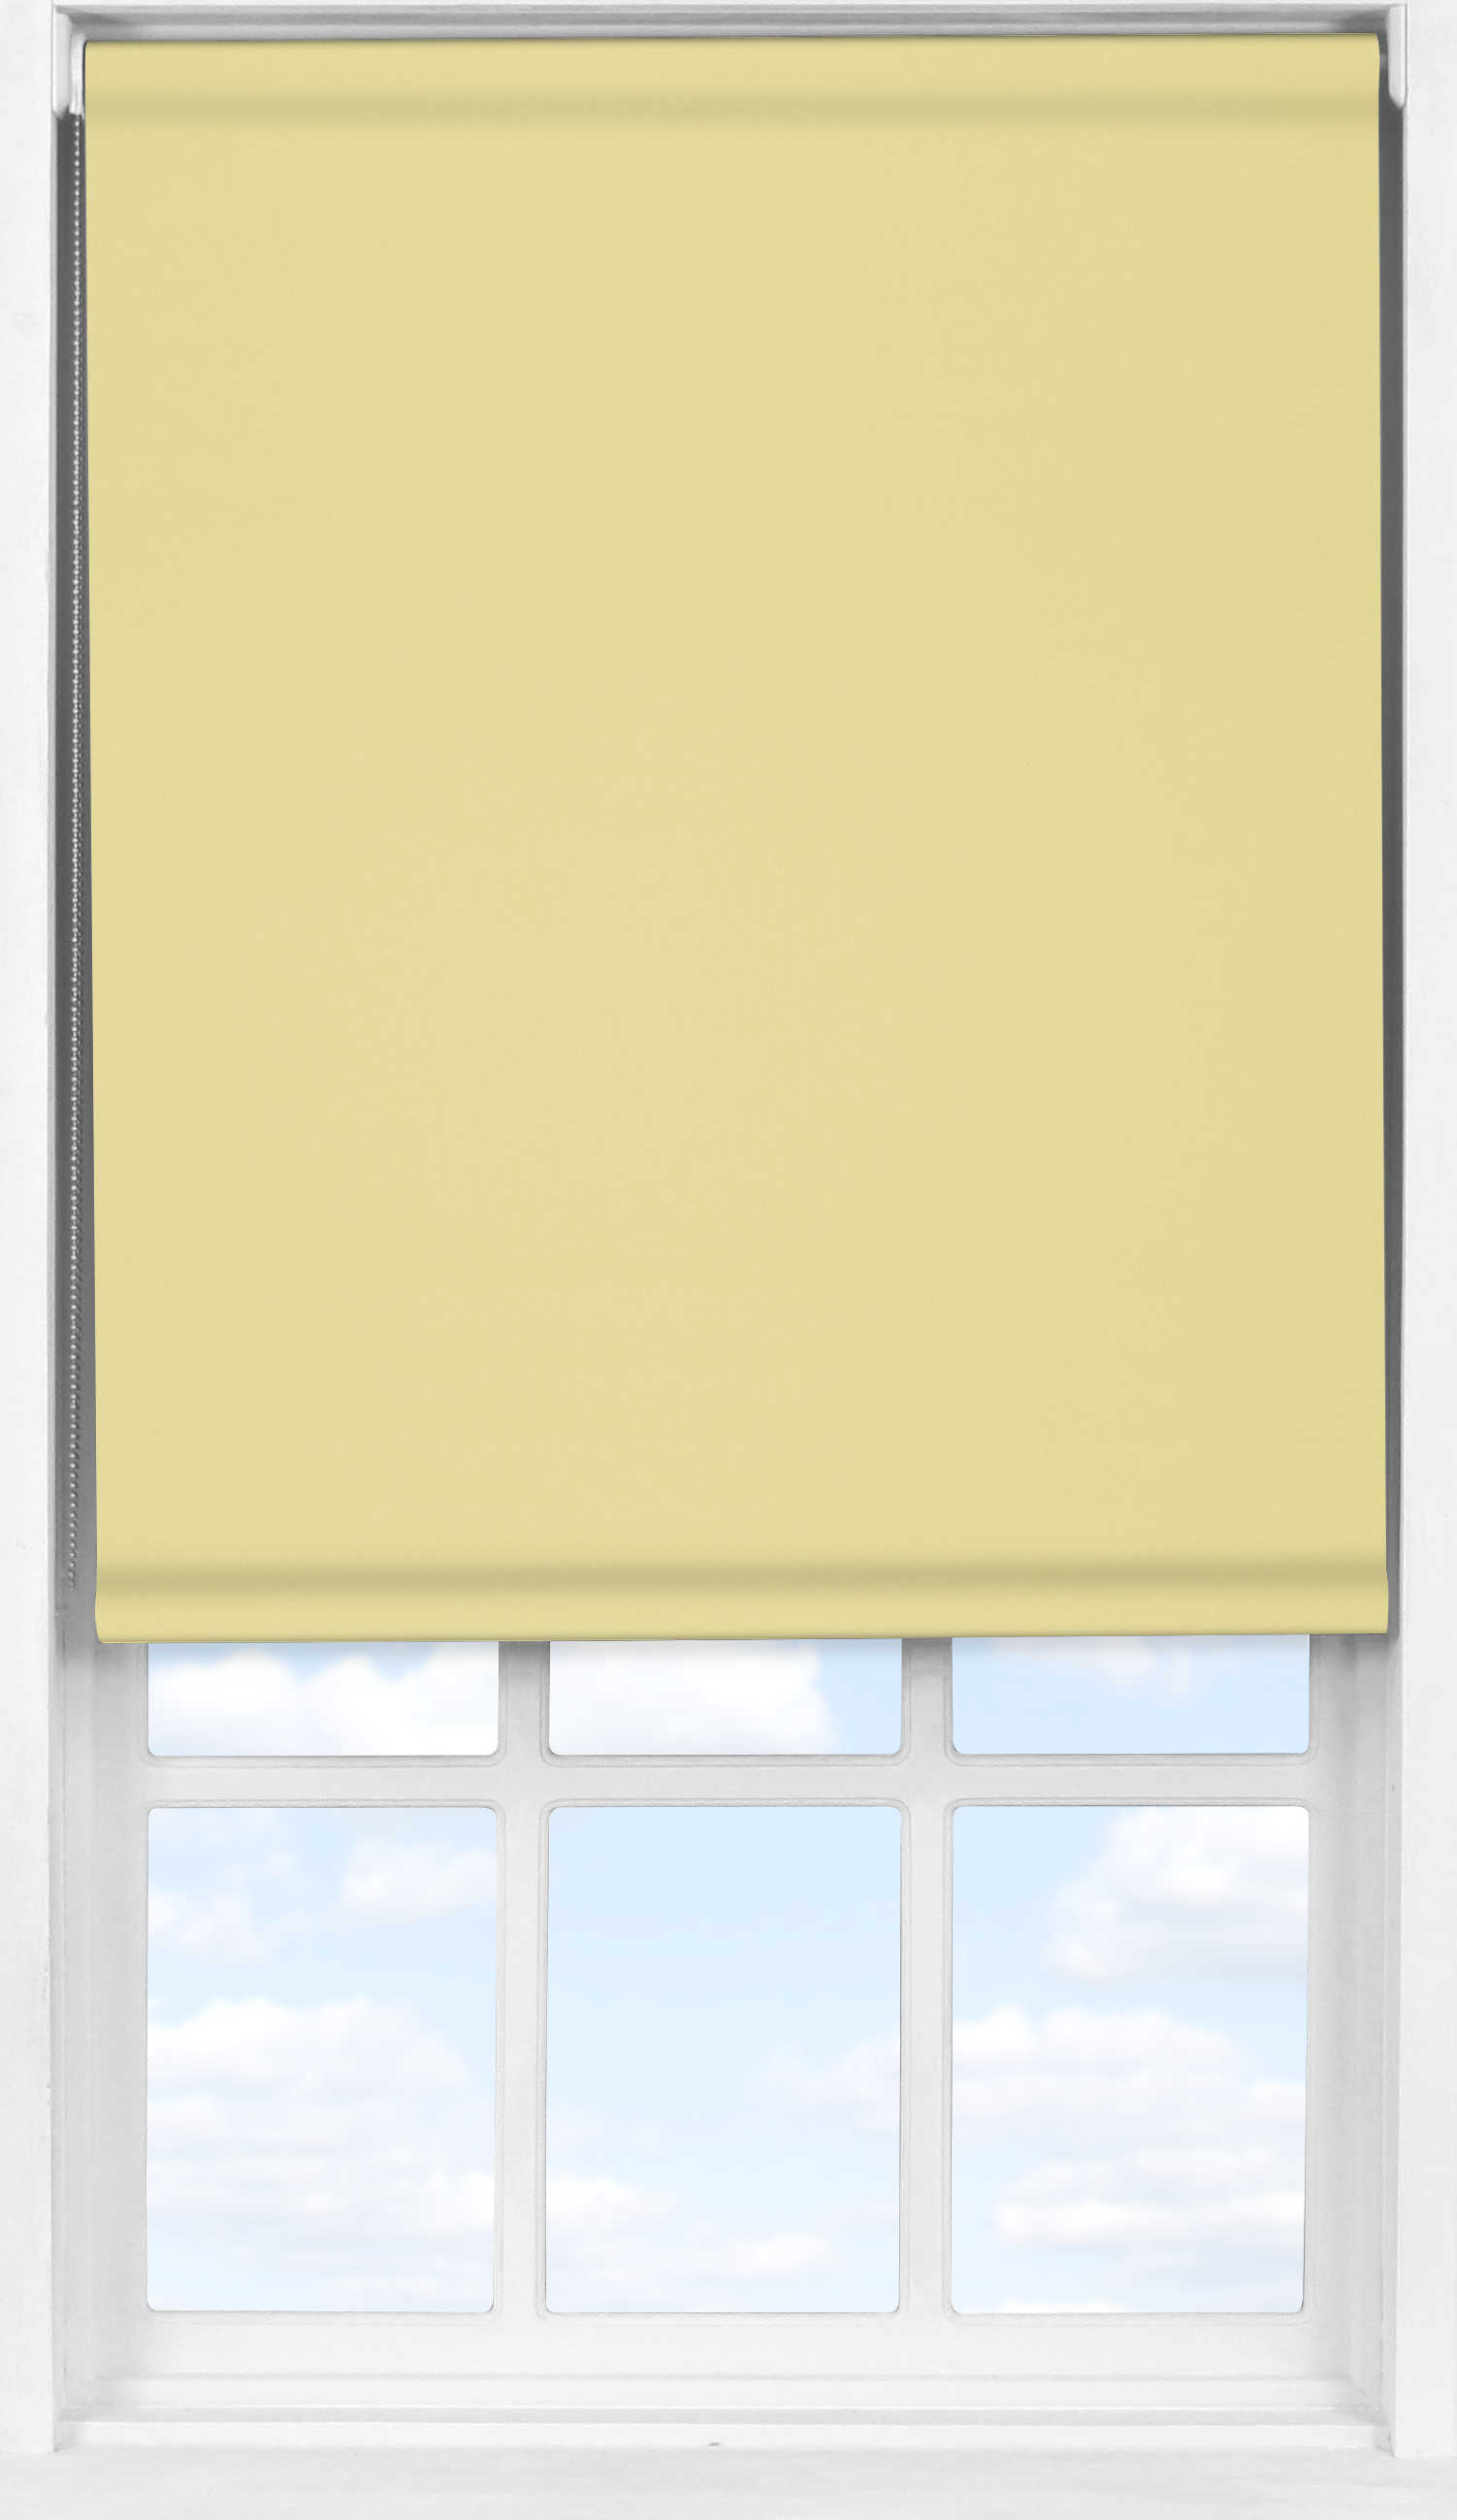 Easifit Roller Blind in Daffodil Yellow Blackout